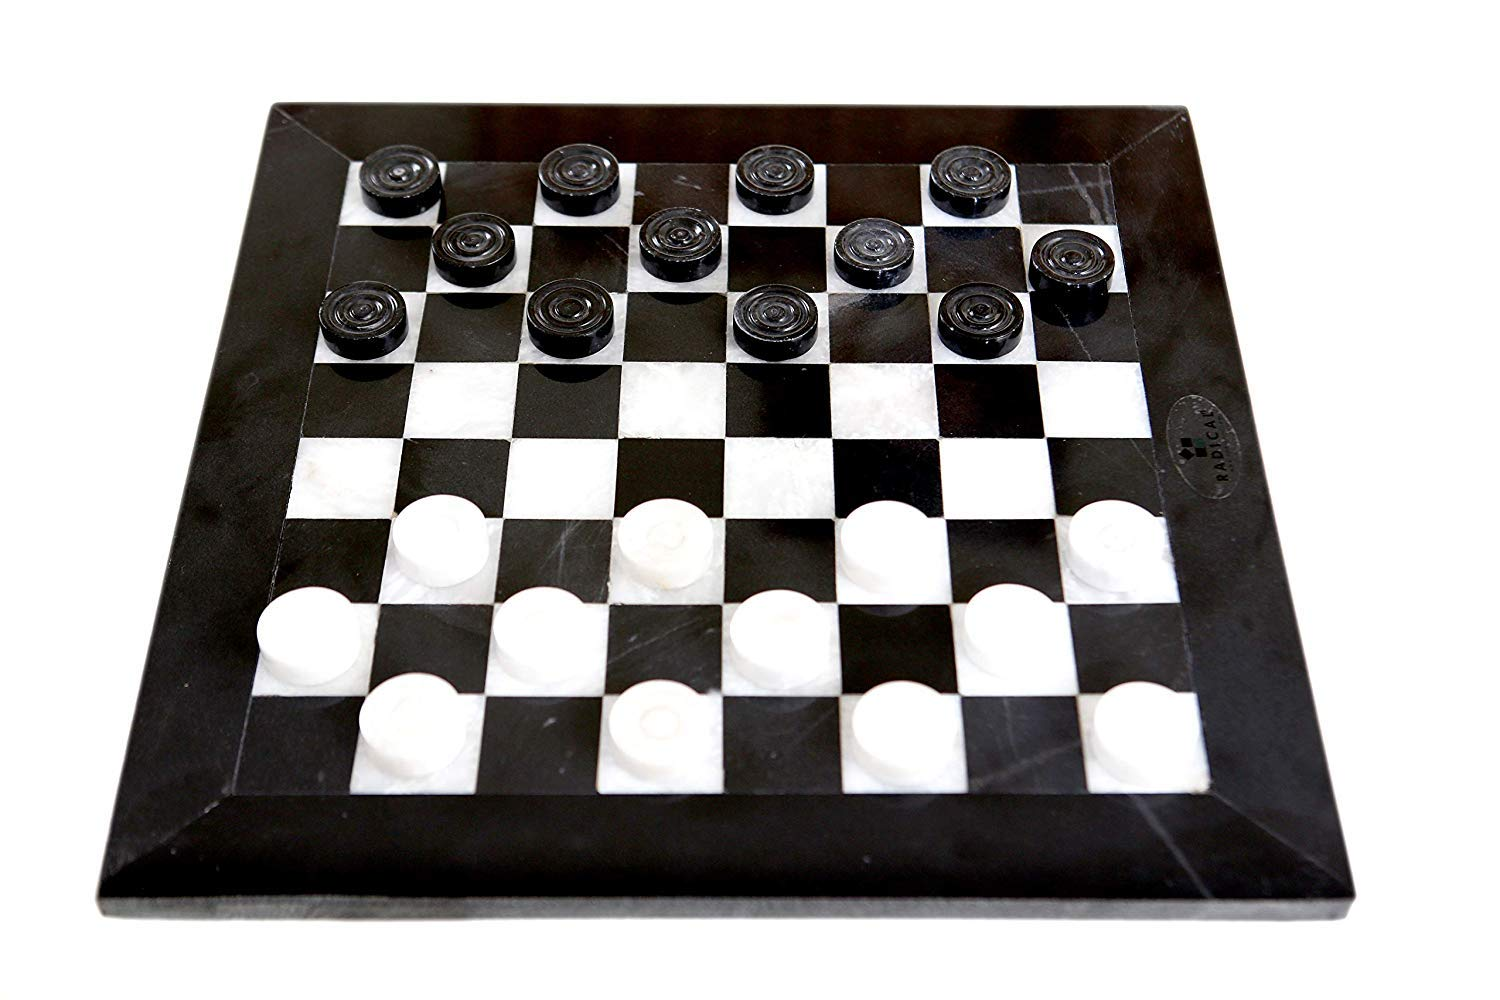 Black /& Coral Radicaln Checkers Chess Game 12 Inches Black and Coral Handmade Marble 2 Player Draughts Coffee Checker Game Set For Kids-Non Chinese Non Plastic-Square Table Chess Checker Board Game